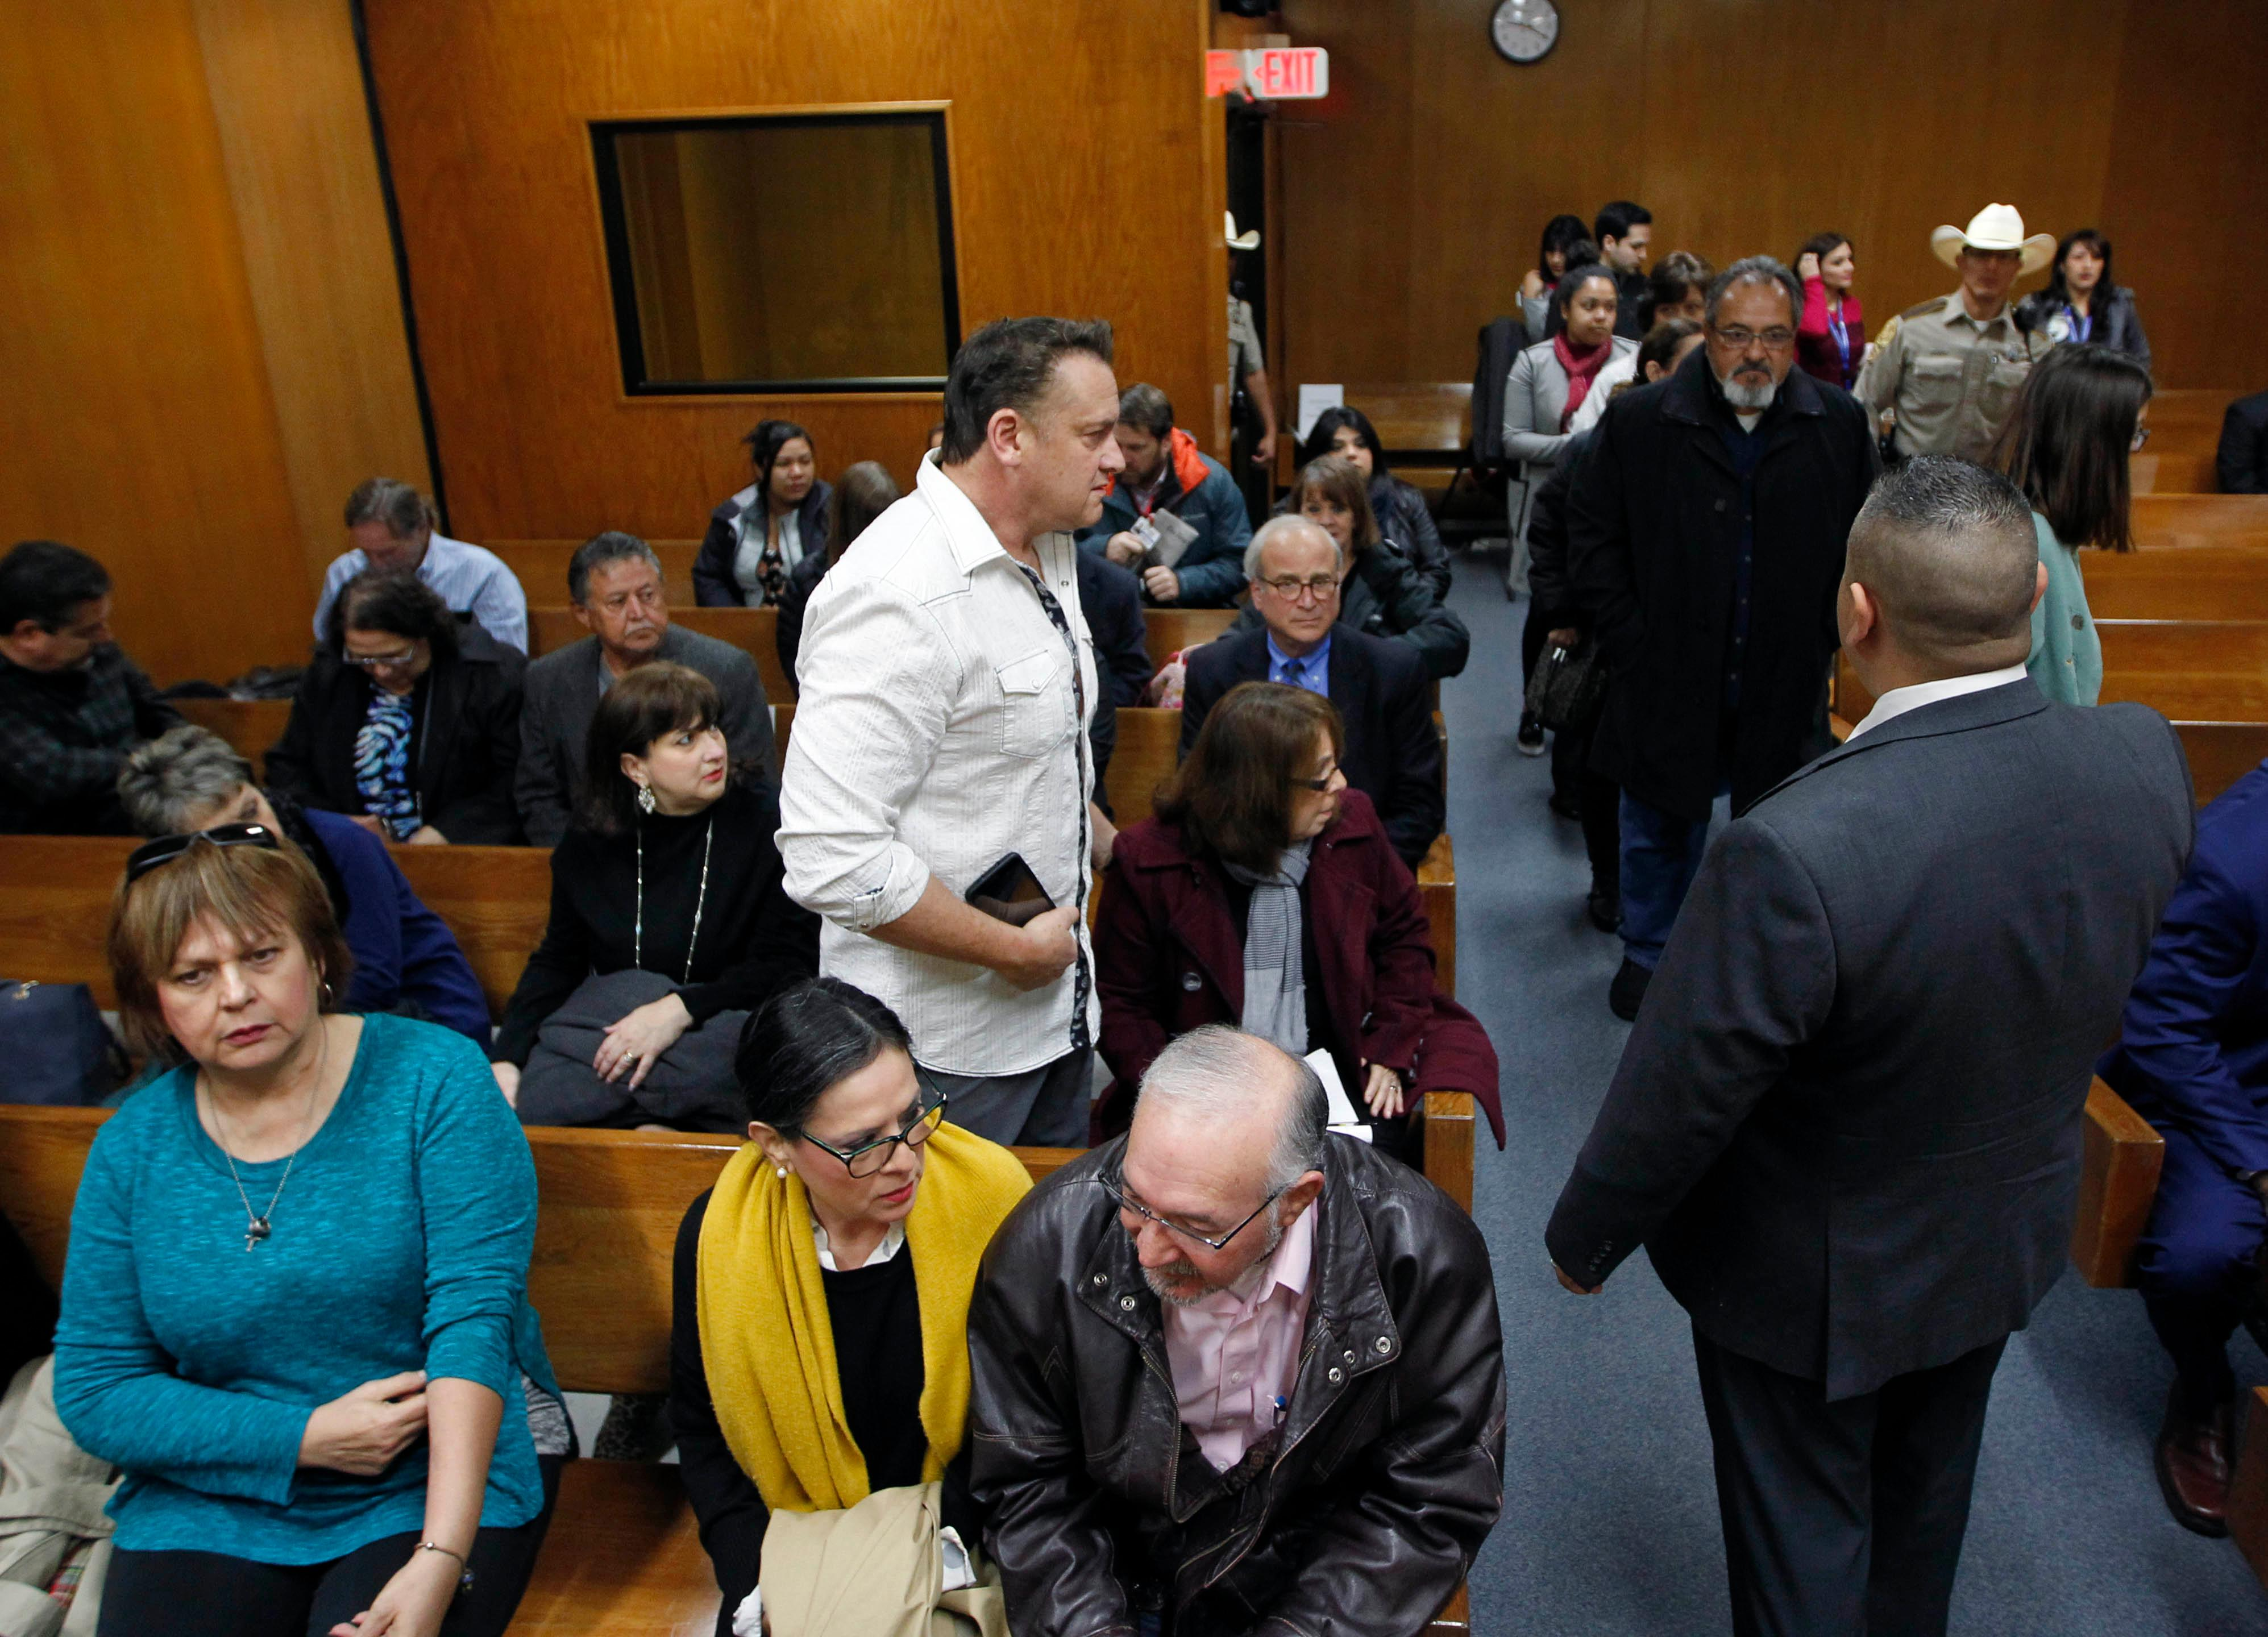 Nick Cavazos, standing, finds a seat in the 92nd state District Court with fellow family members of Irene Garza Lynda de la Vi?a, seated center, and Noemi Sigler, bottom left, before the start of closing arguments in John Bernard Feit's trial for the 1960 murder of Irene Garza in the 92nd state District Court Thursday, December 7, 2017, at the Hidalgo County Courthouse in Edinburg.  (Nathan Lambrecht/The Monitor/Pool)